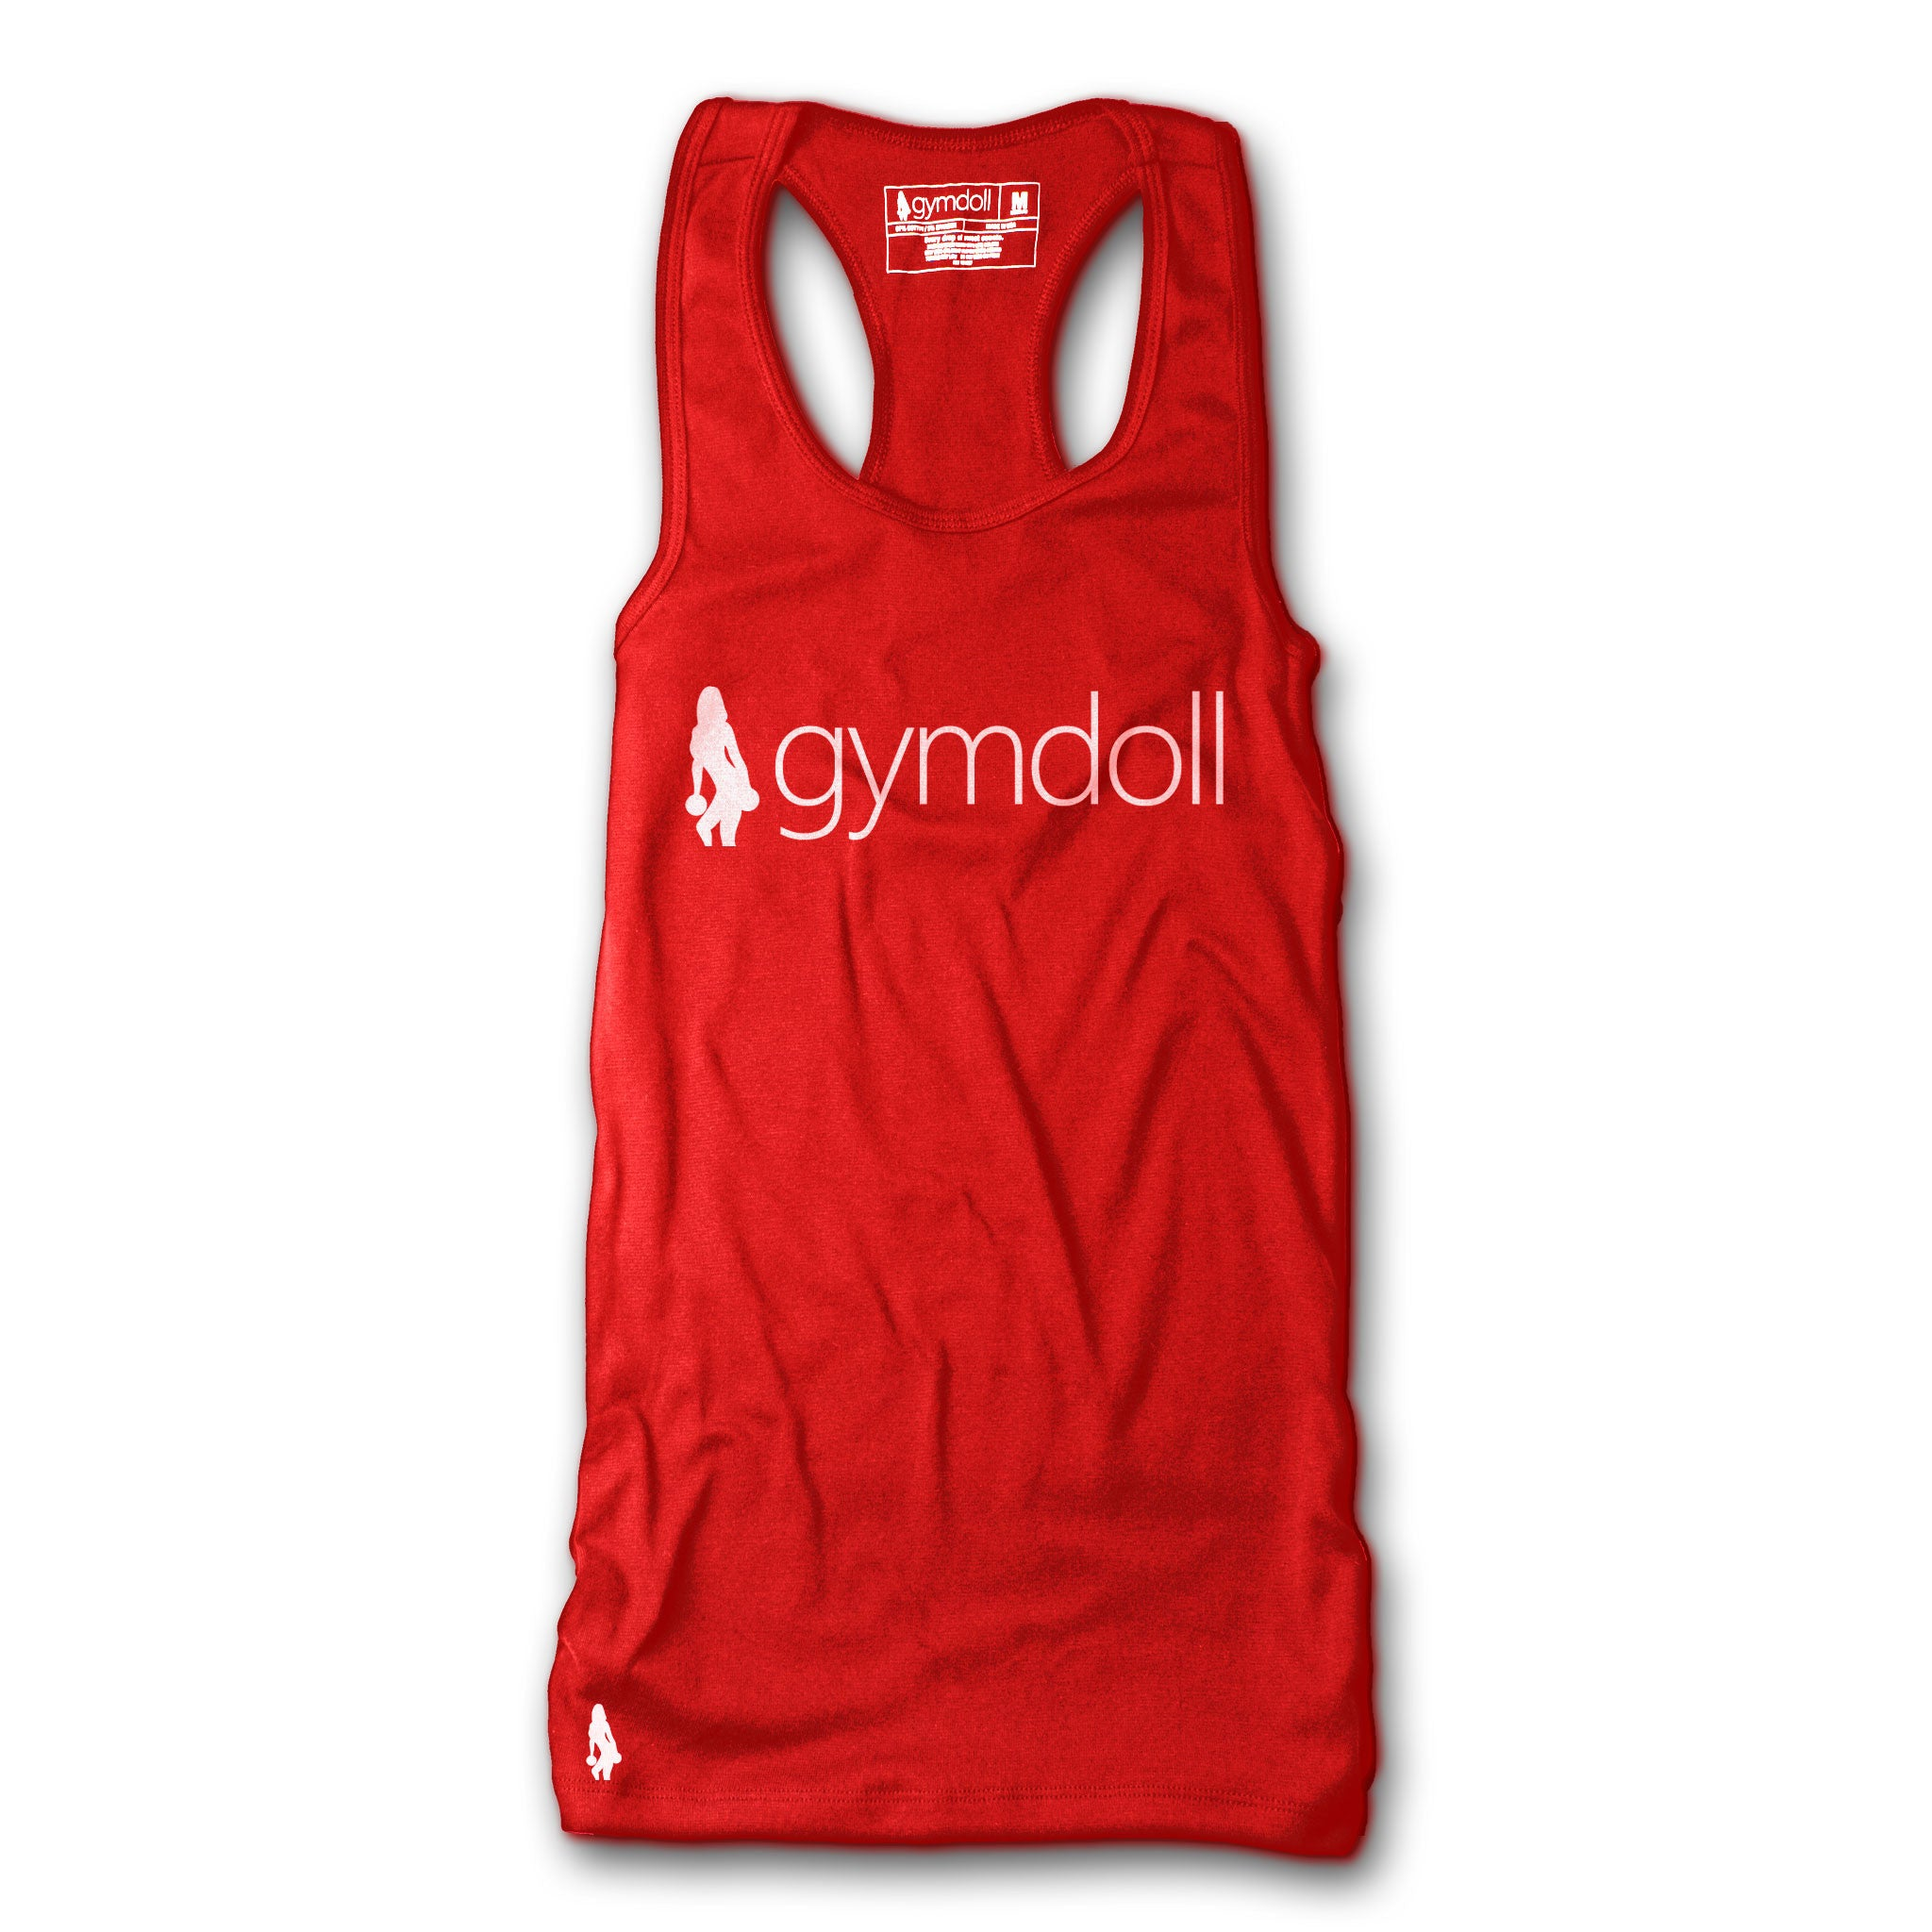 Gymdoll Racerback Active Tank - Logo - Red/White